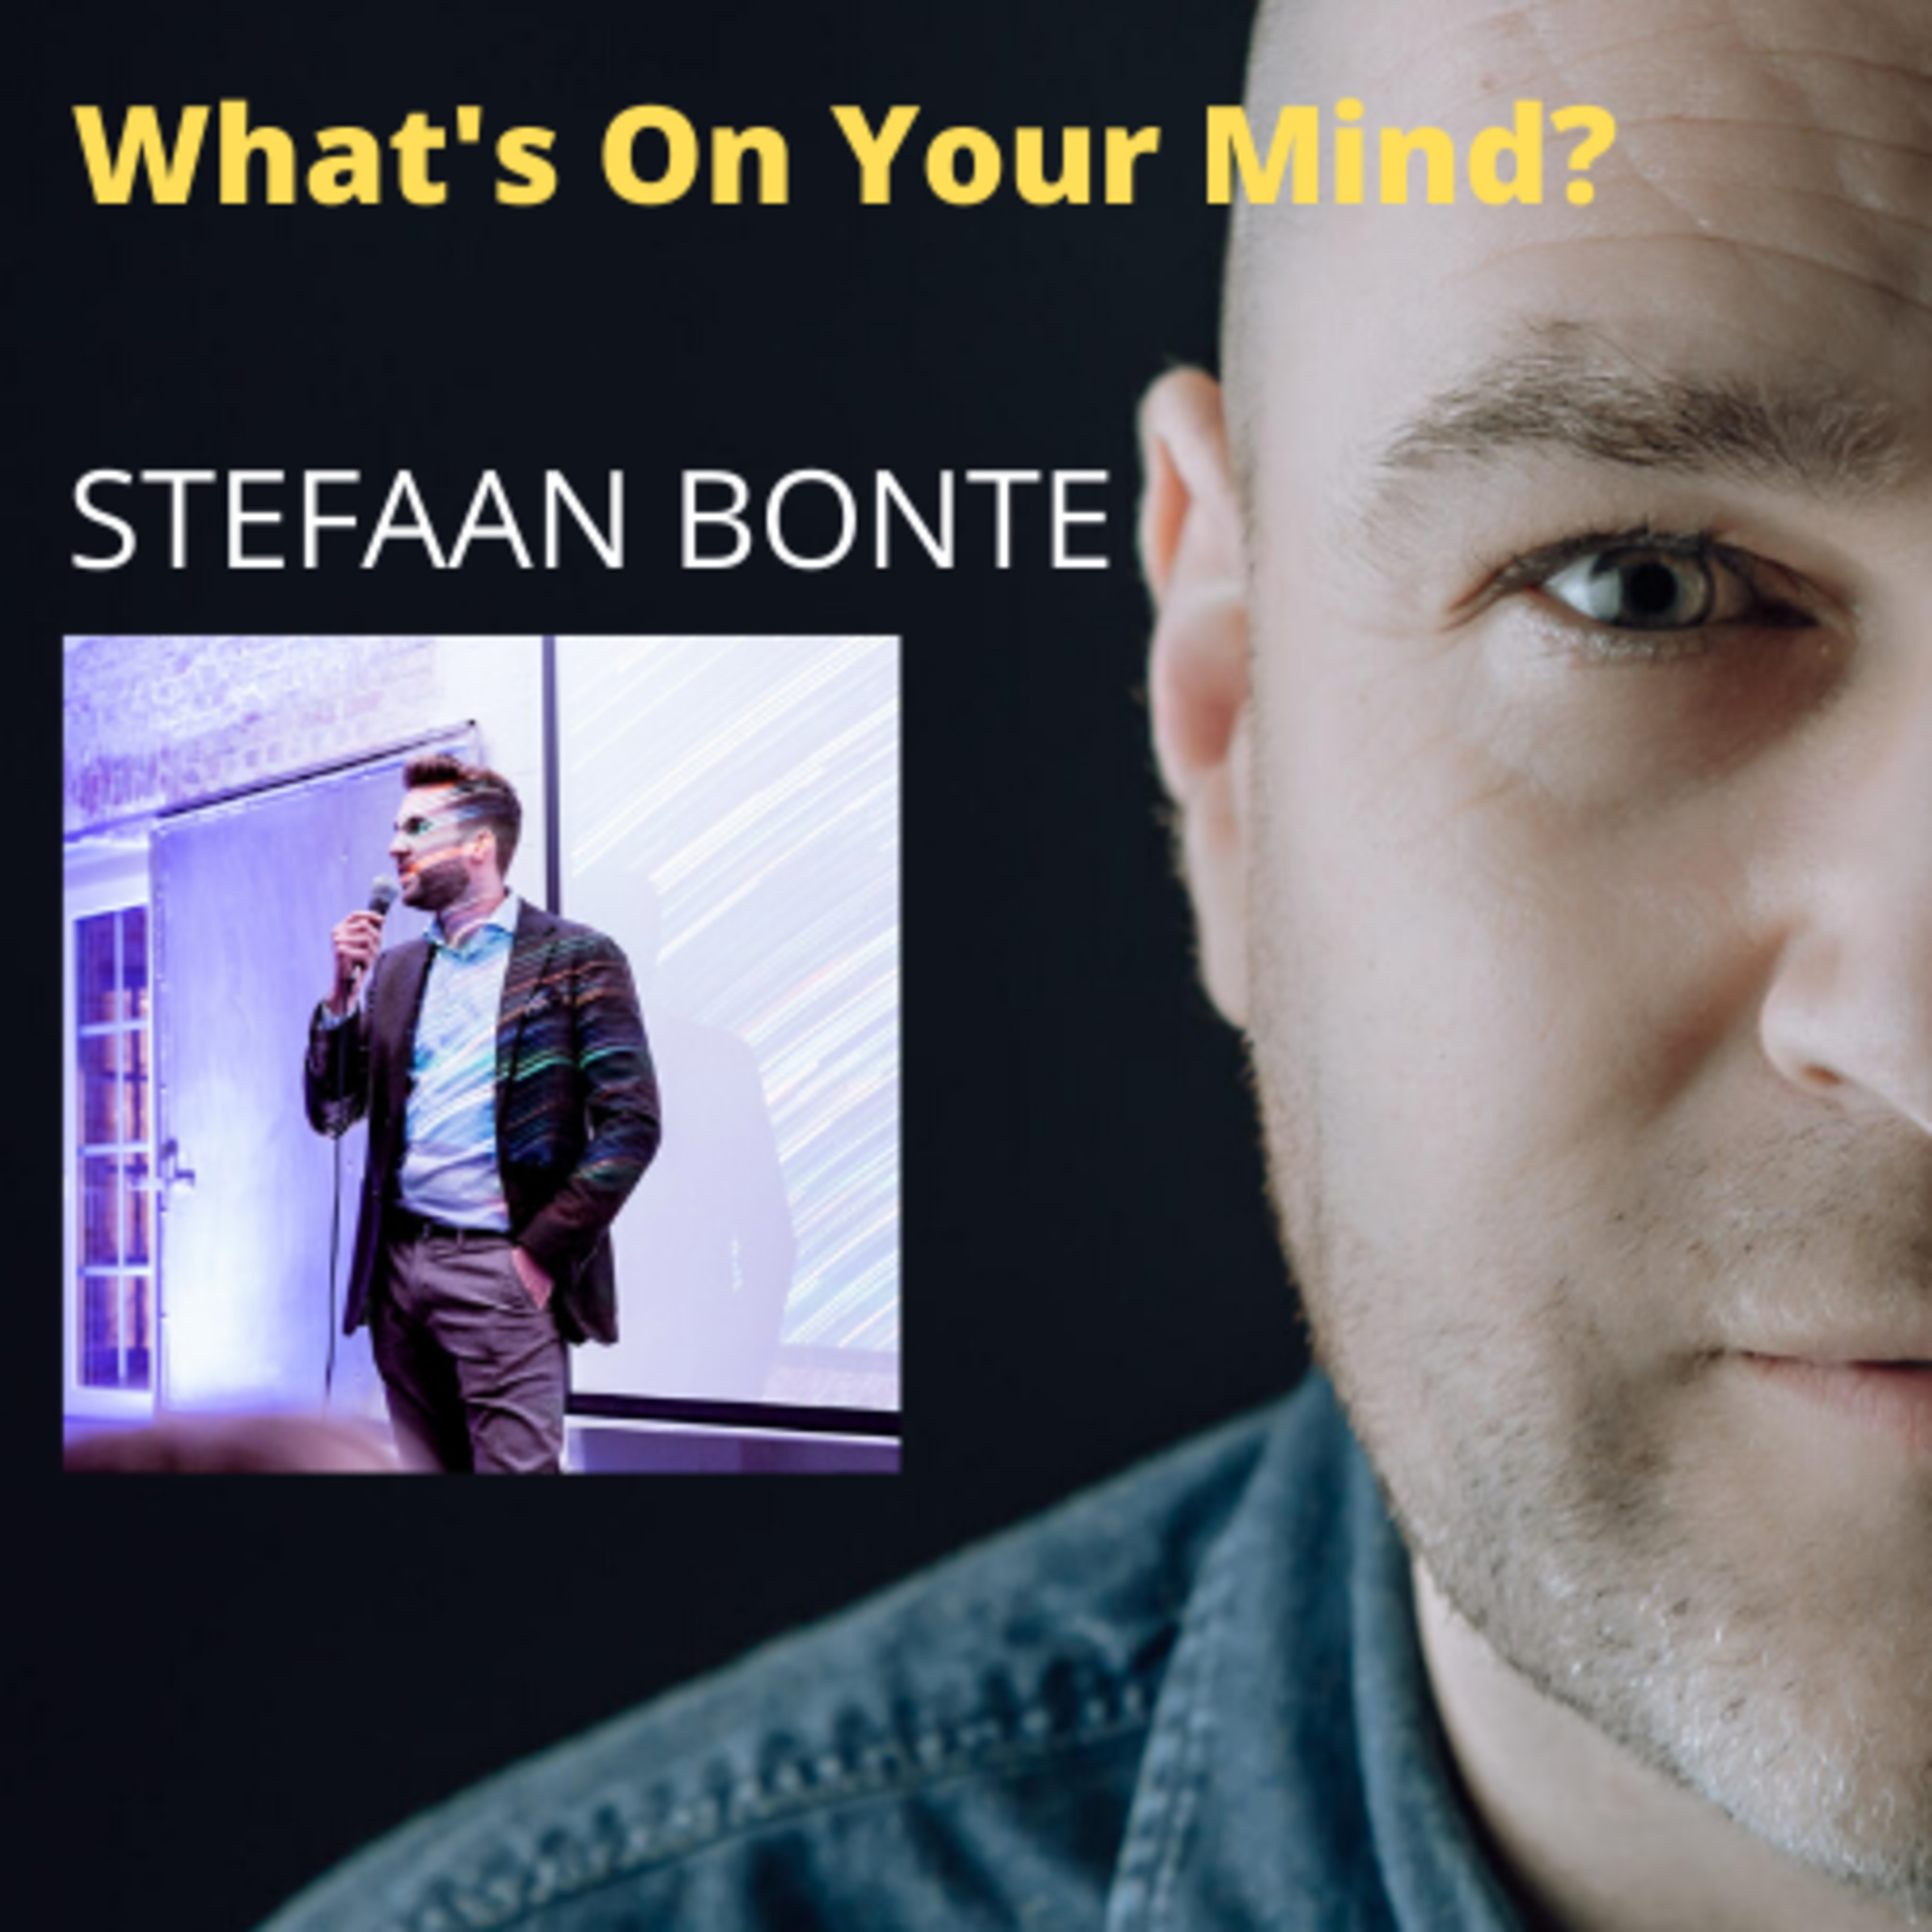 What's On Your Mind 7: Stefaan Bonte